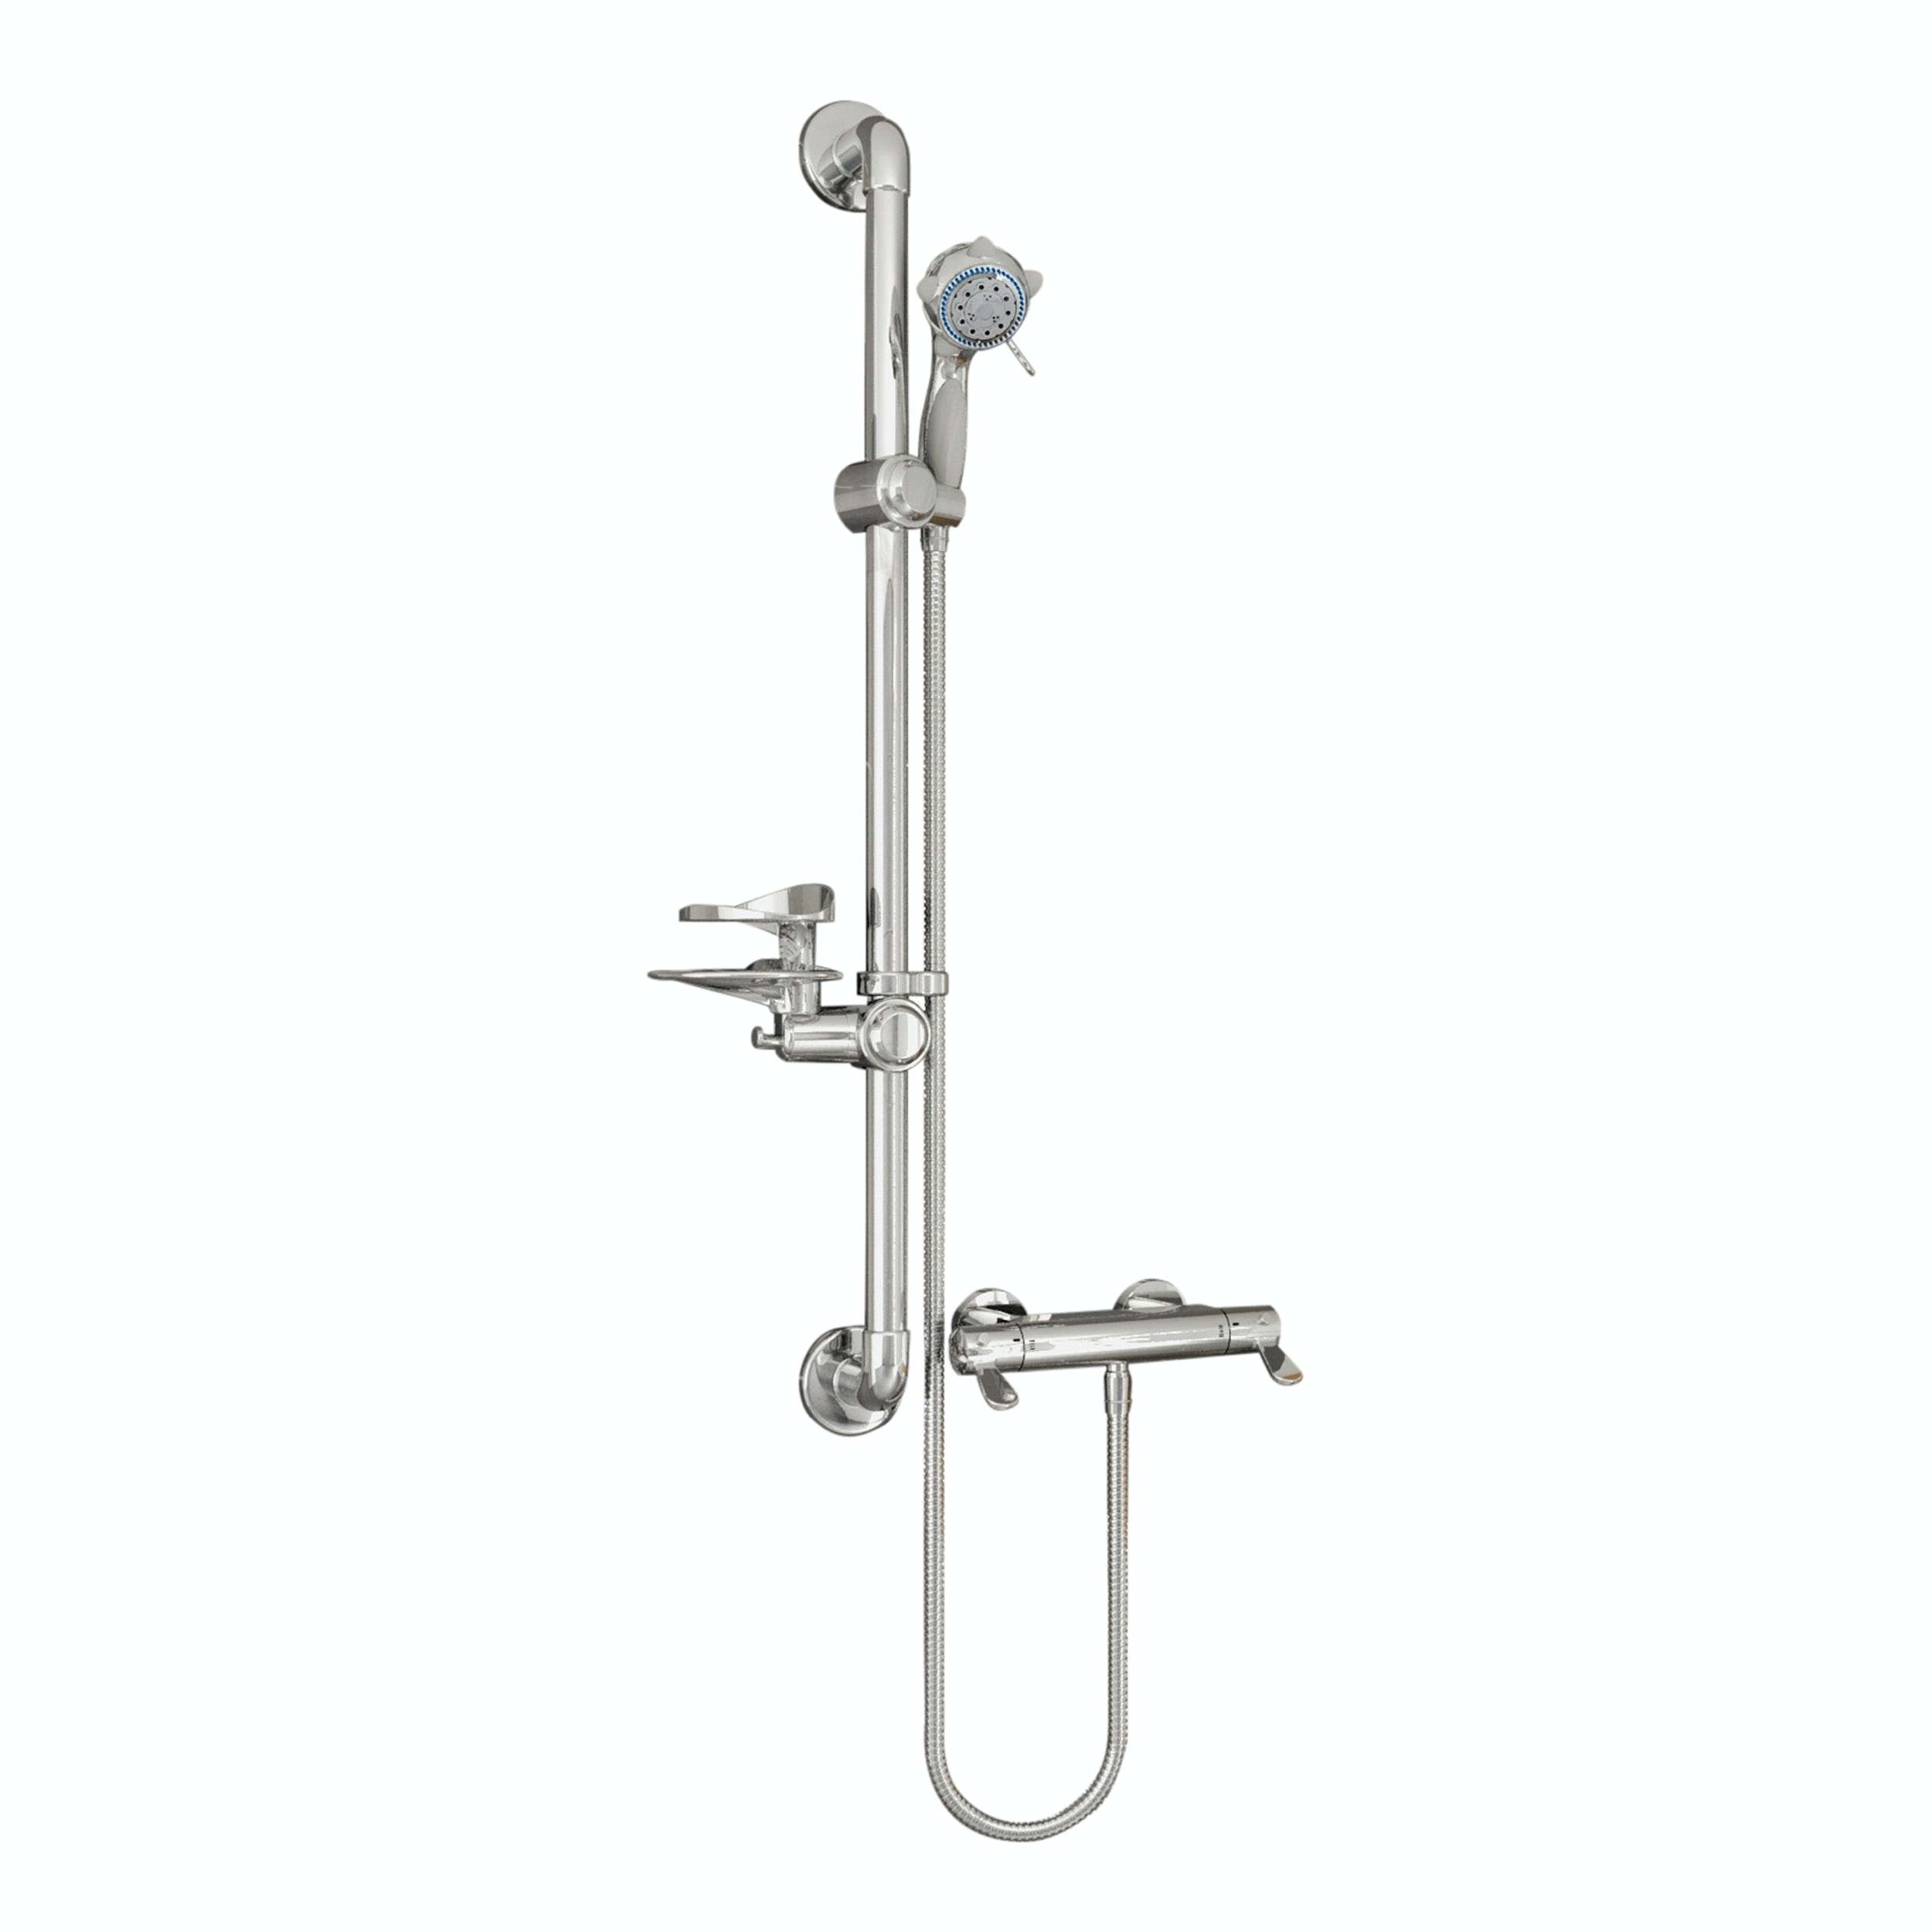 AKW Arka Care thermostatic mixer shower set | VictoriaPlum.com